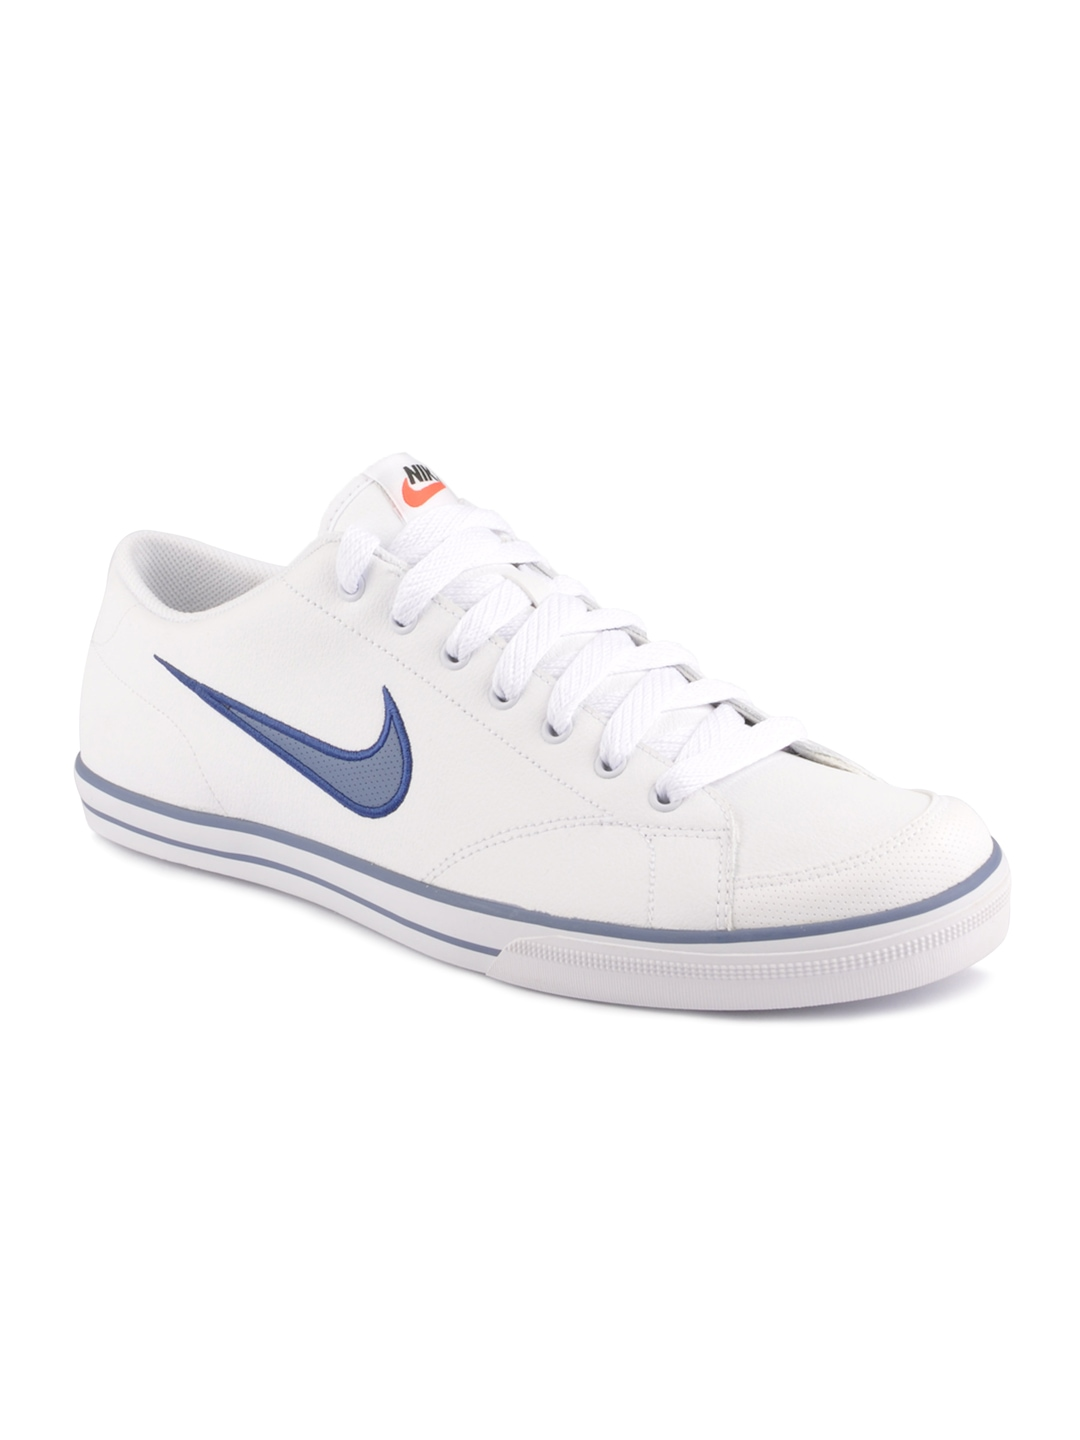 myntra nike sports white casual shoes 12813 buy